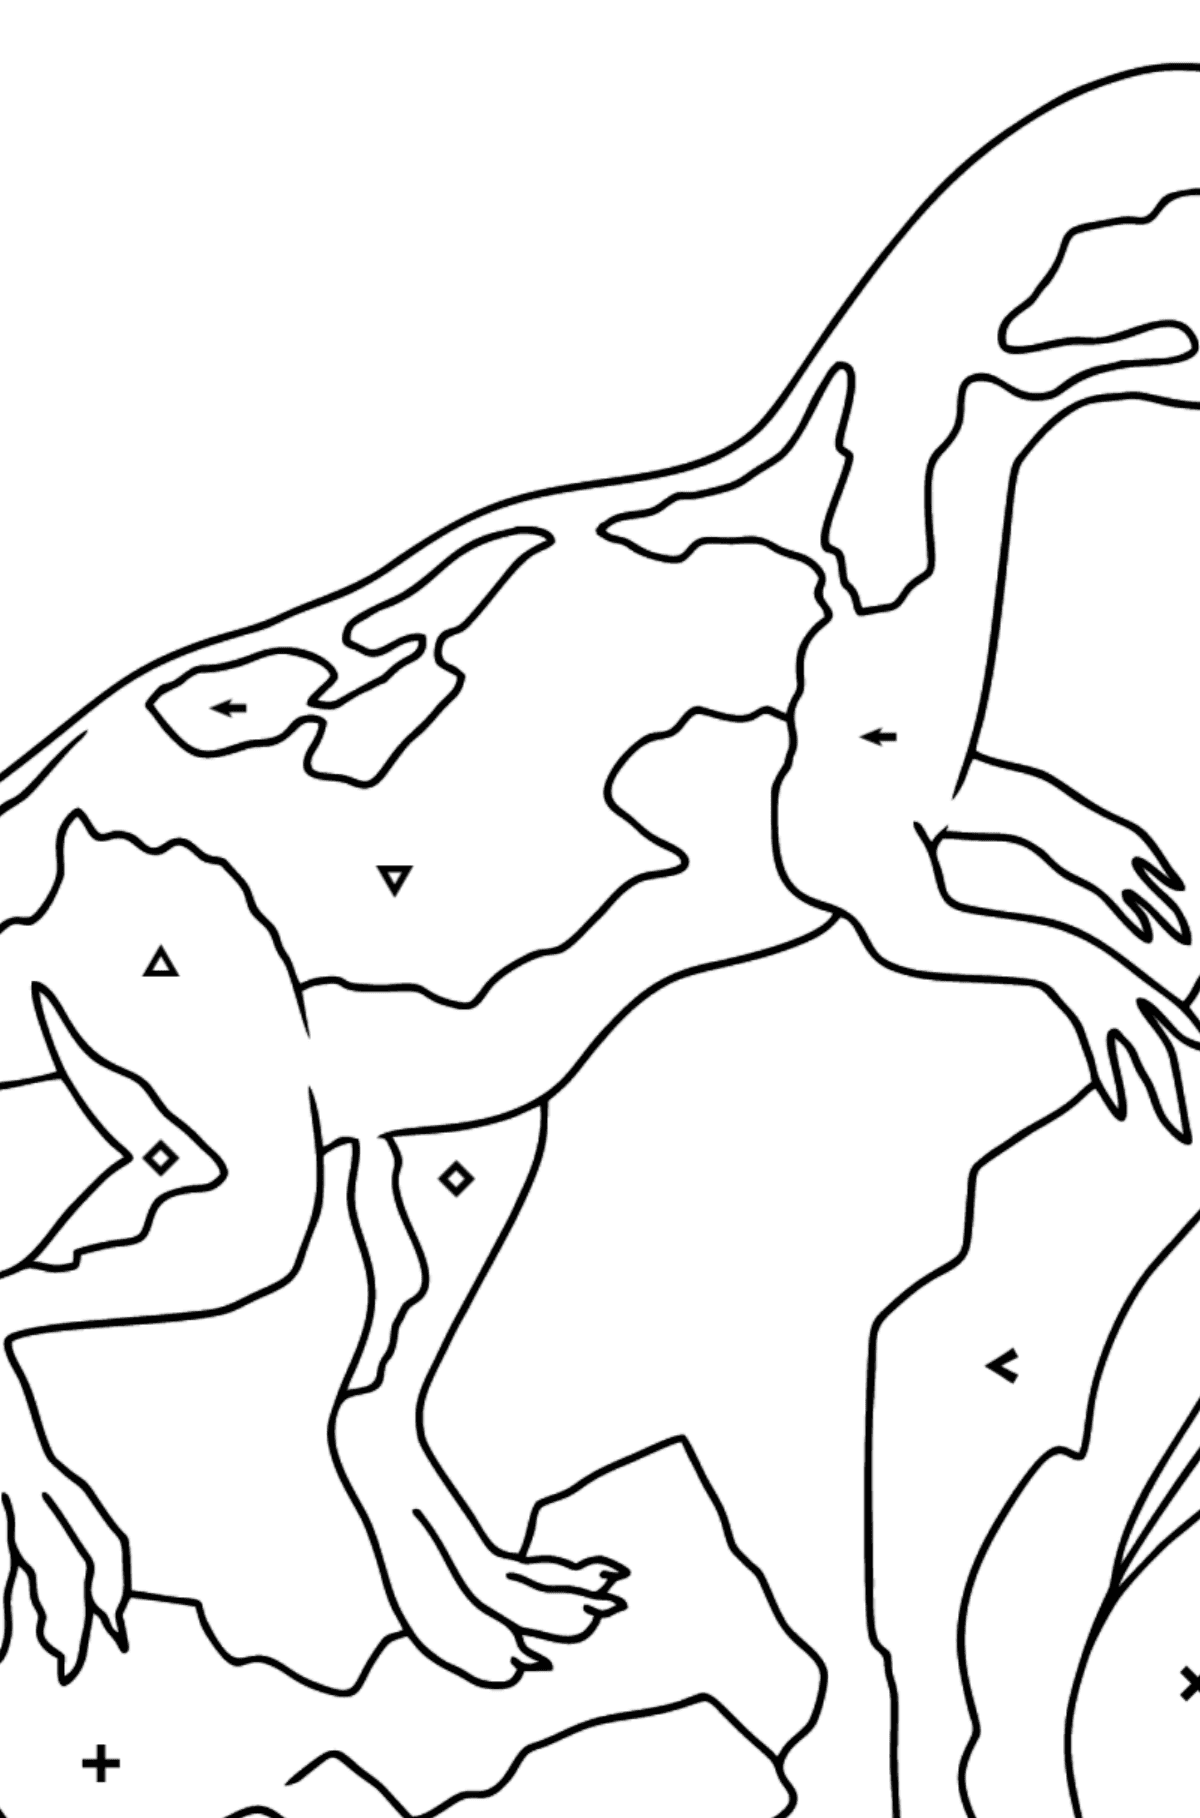 Coloring Page - Allosaurus - Jurassic Dinosaur - Coloring by Symbols for Kids